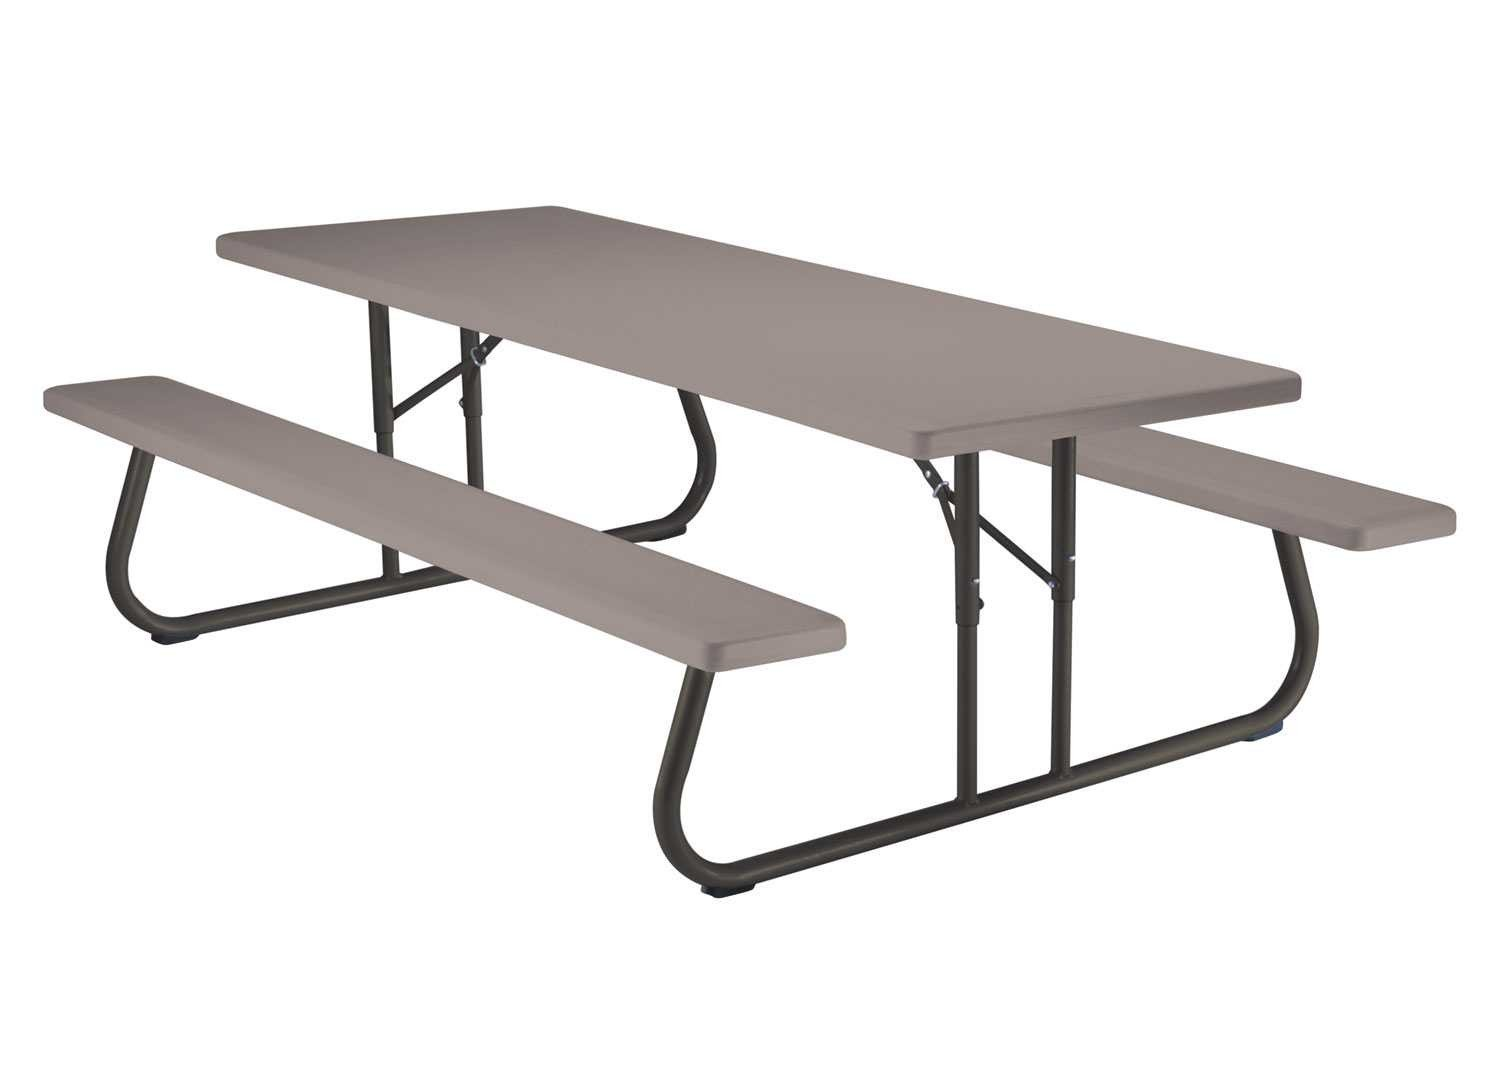 amazoncom lifetime folding picnic table and benches 8 feet patio lawn u0026 garden